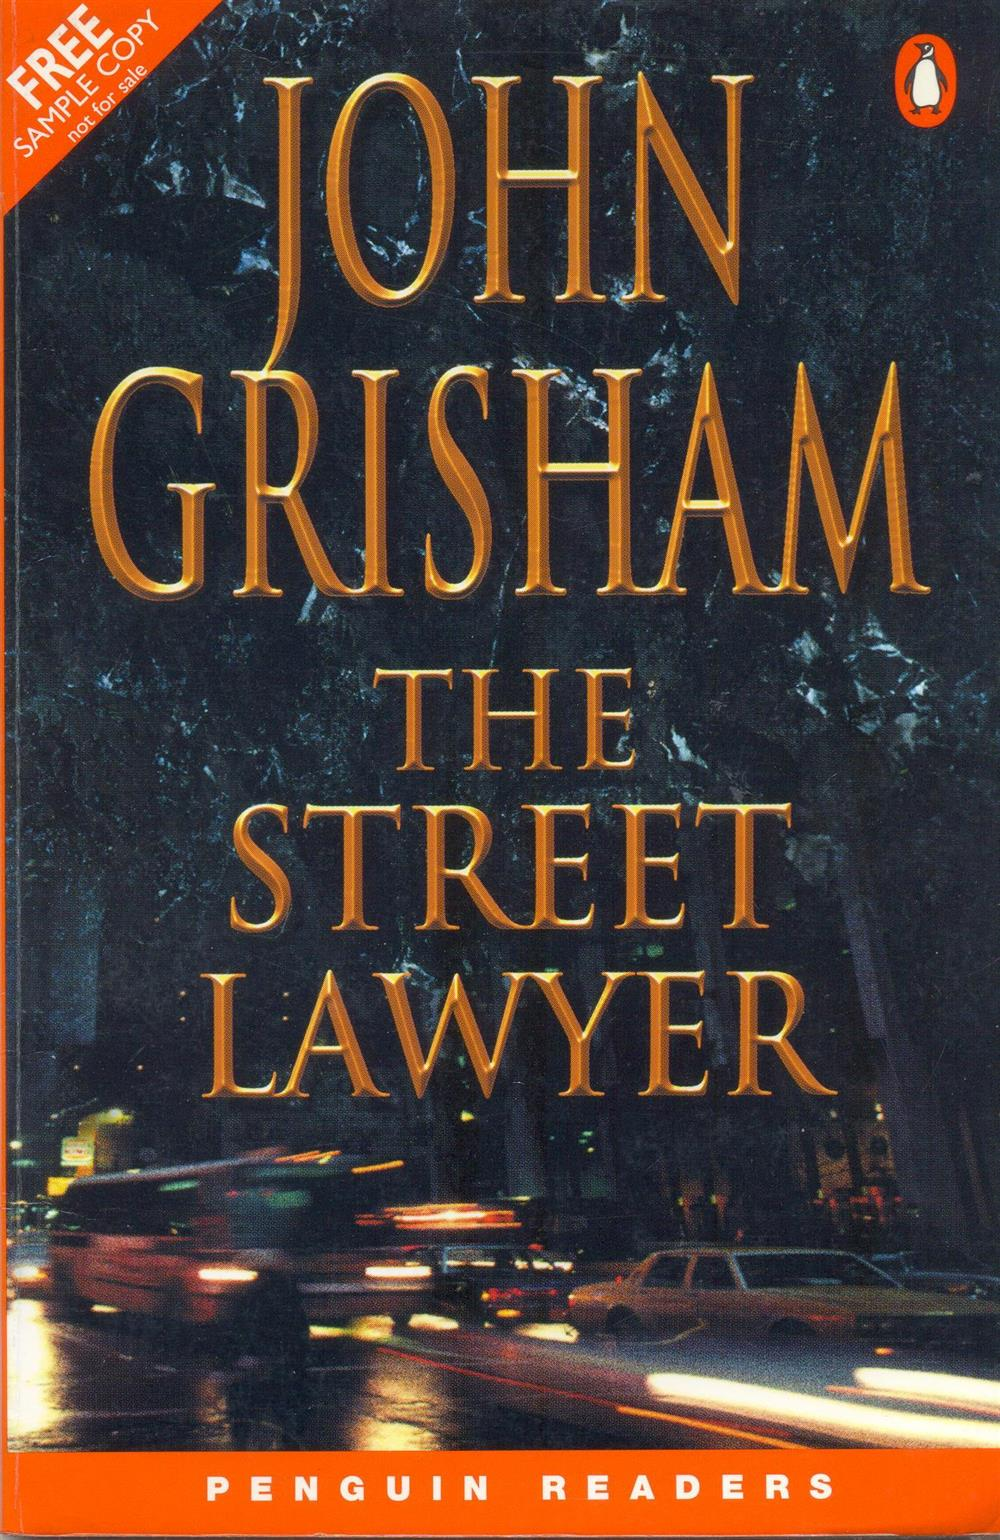 The street lawyer 001.jpg